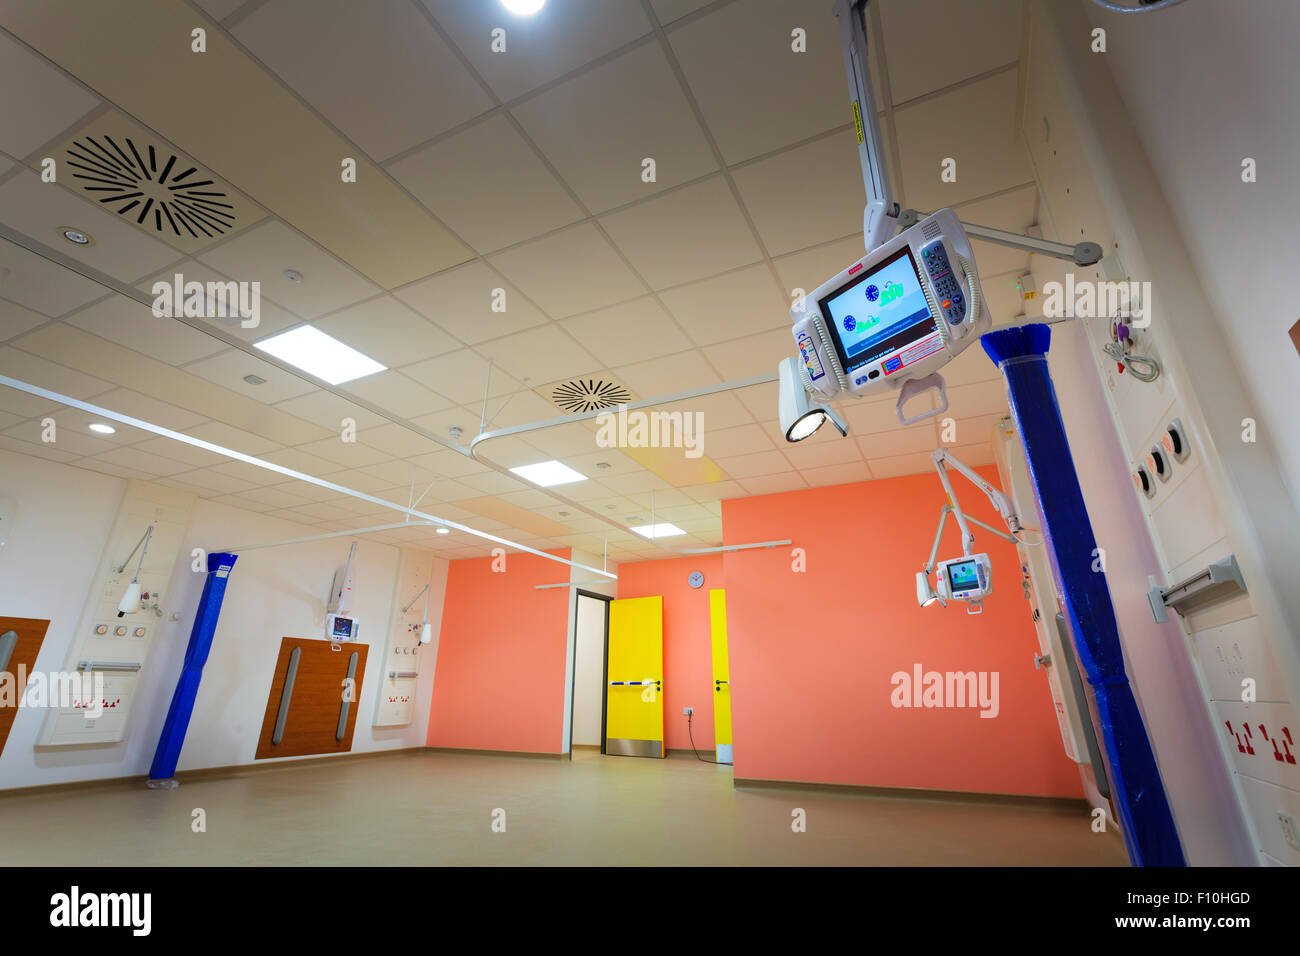 Personal television on bed stations in empty hospital ward - Stock Image